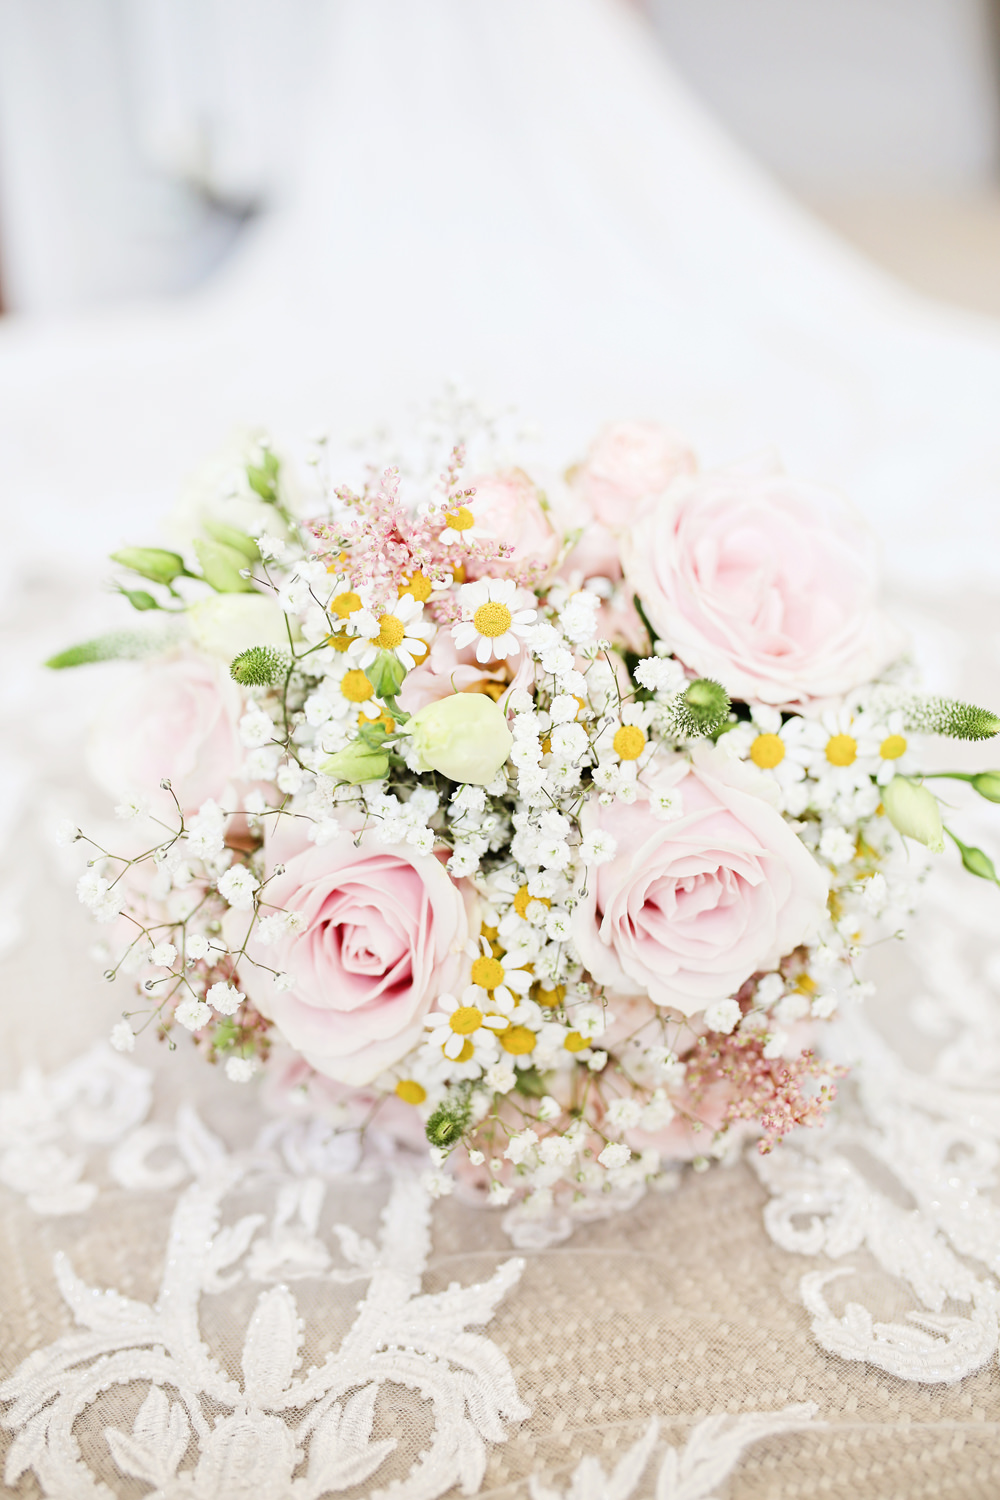 Bouquet Flowers Bride Bridal Pink Rose Gypsophila Daisy Milling Barn Wedding Victoria Mitchell Photography